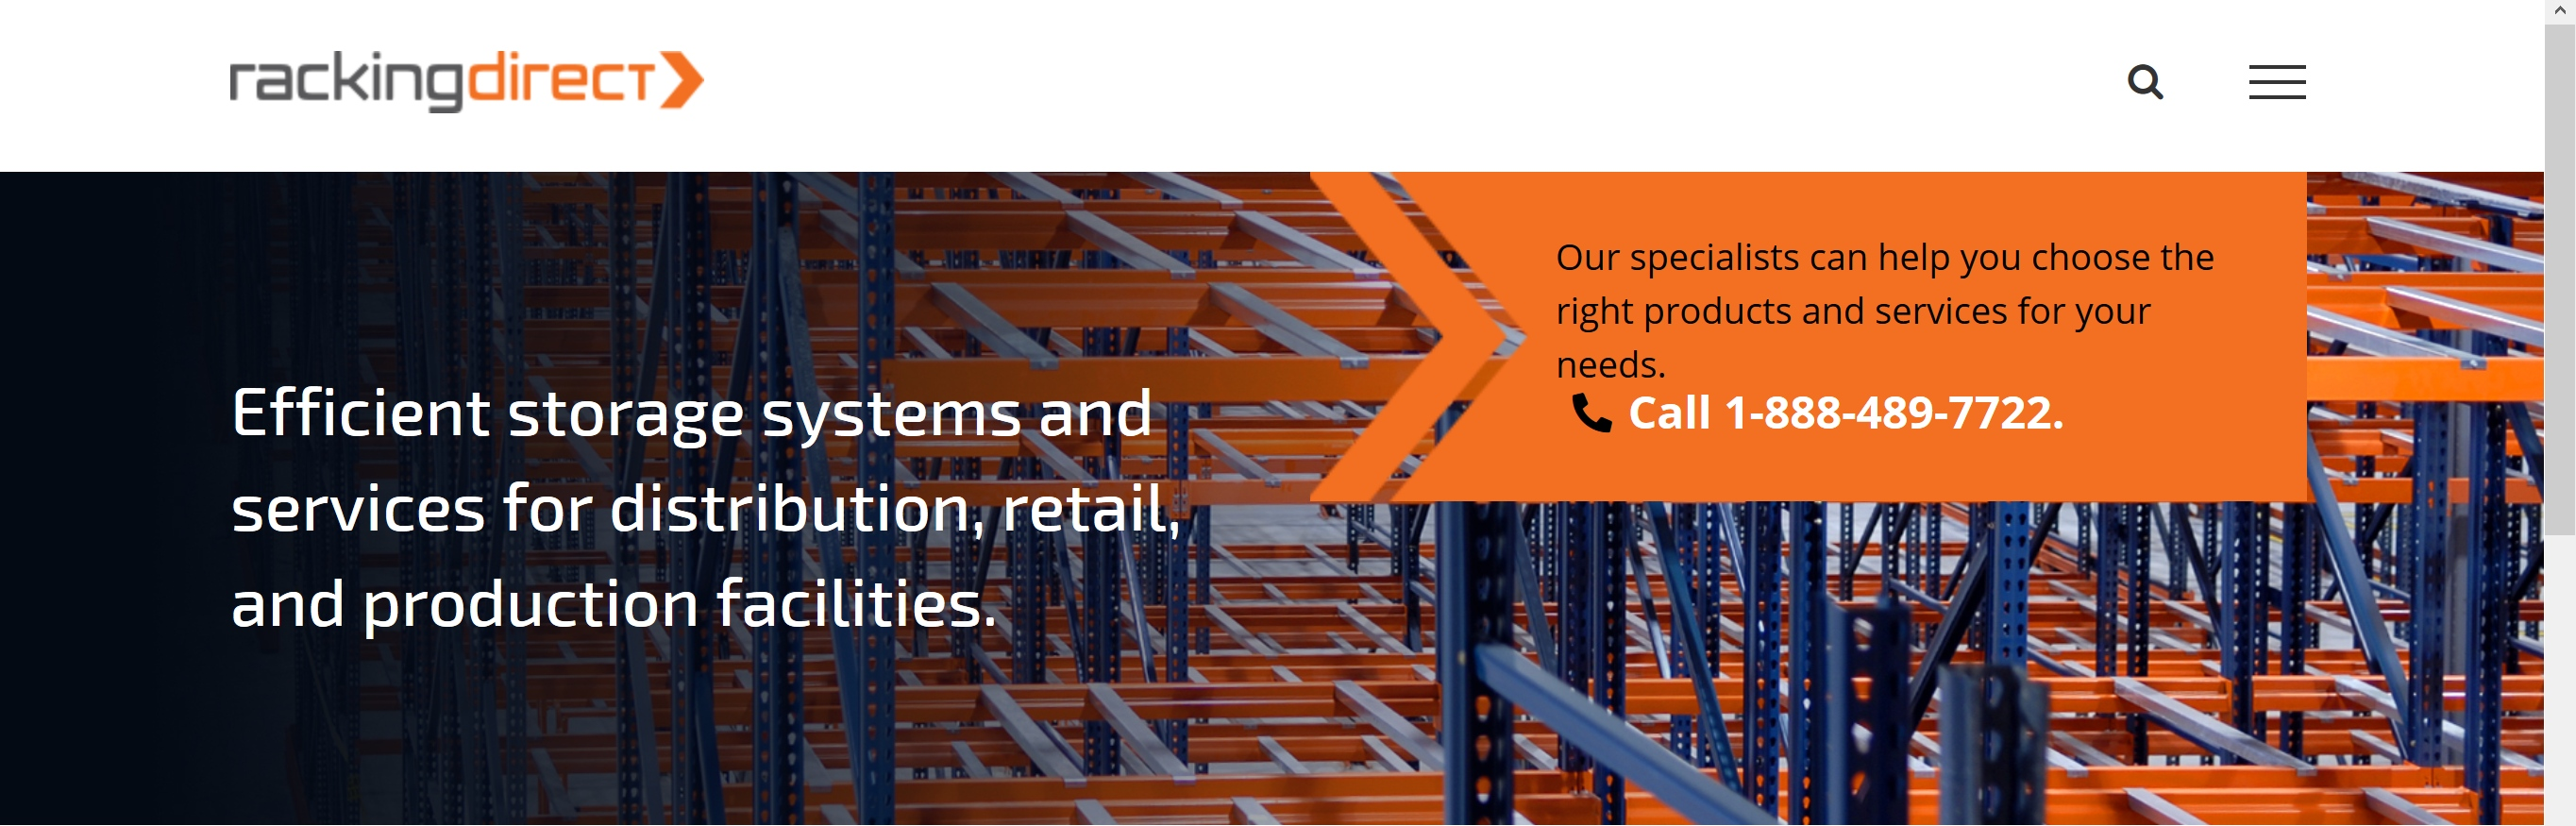 RackingDIRECT Racking for Industries